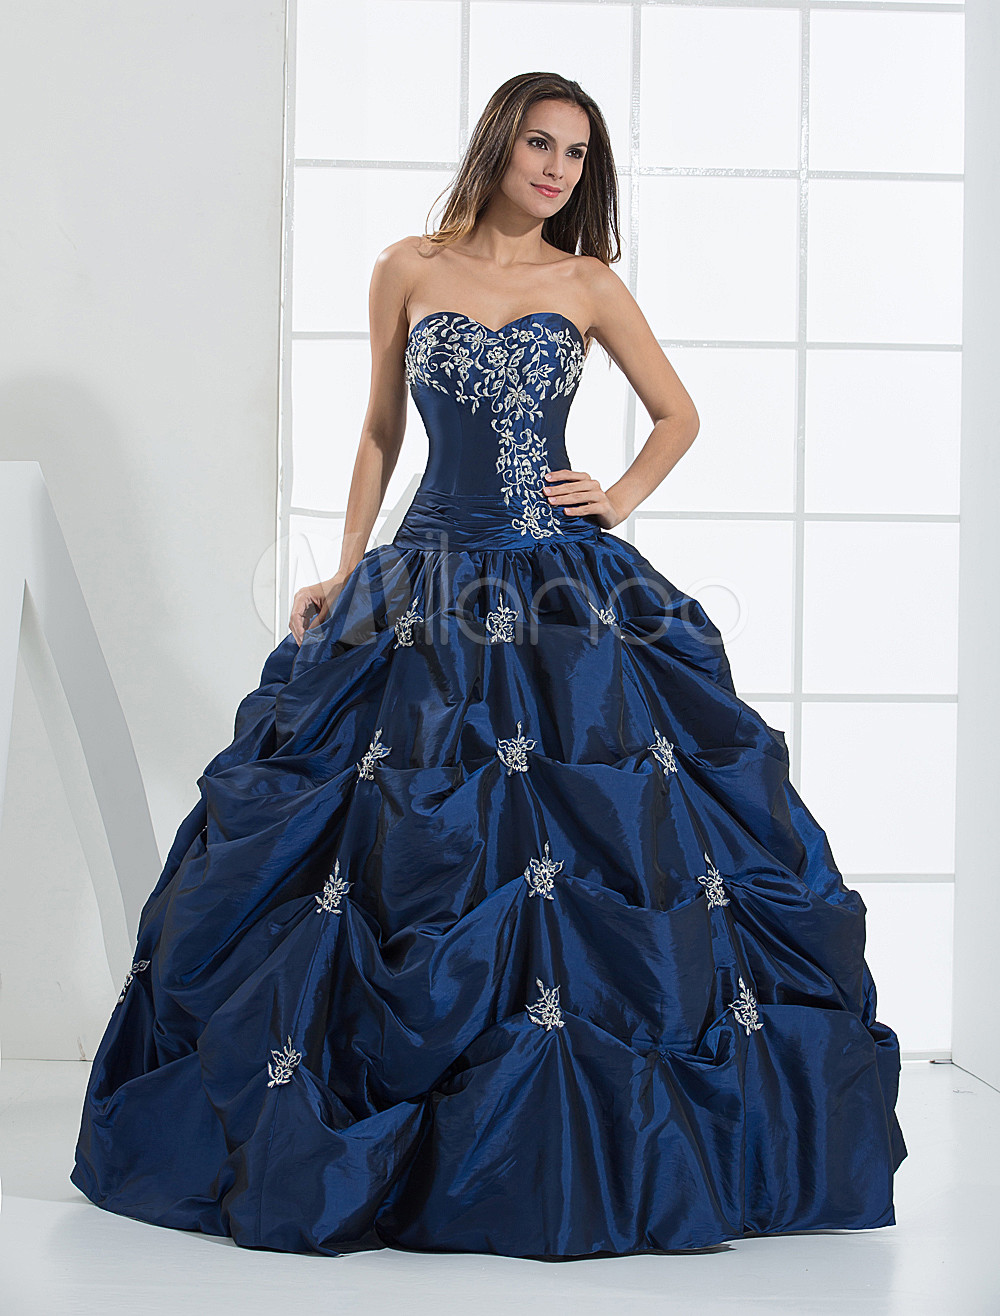 sweetheart royal blue ball gown with beads. Black Bedroom Furniture Sets. Home Design Ideas